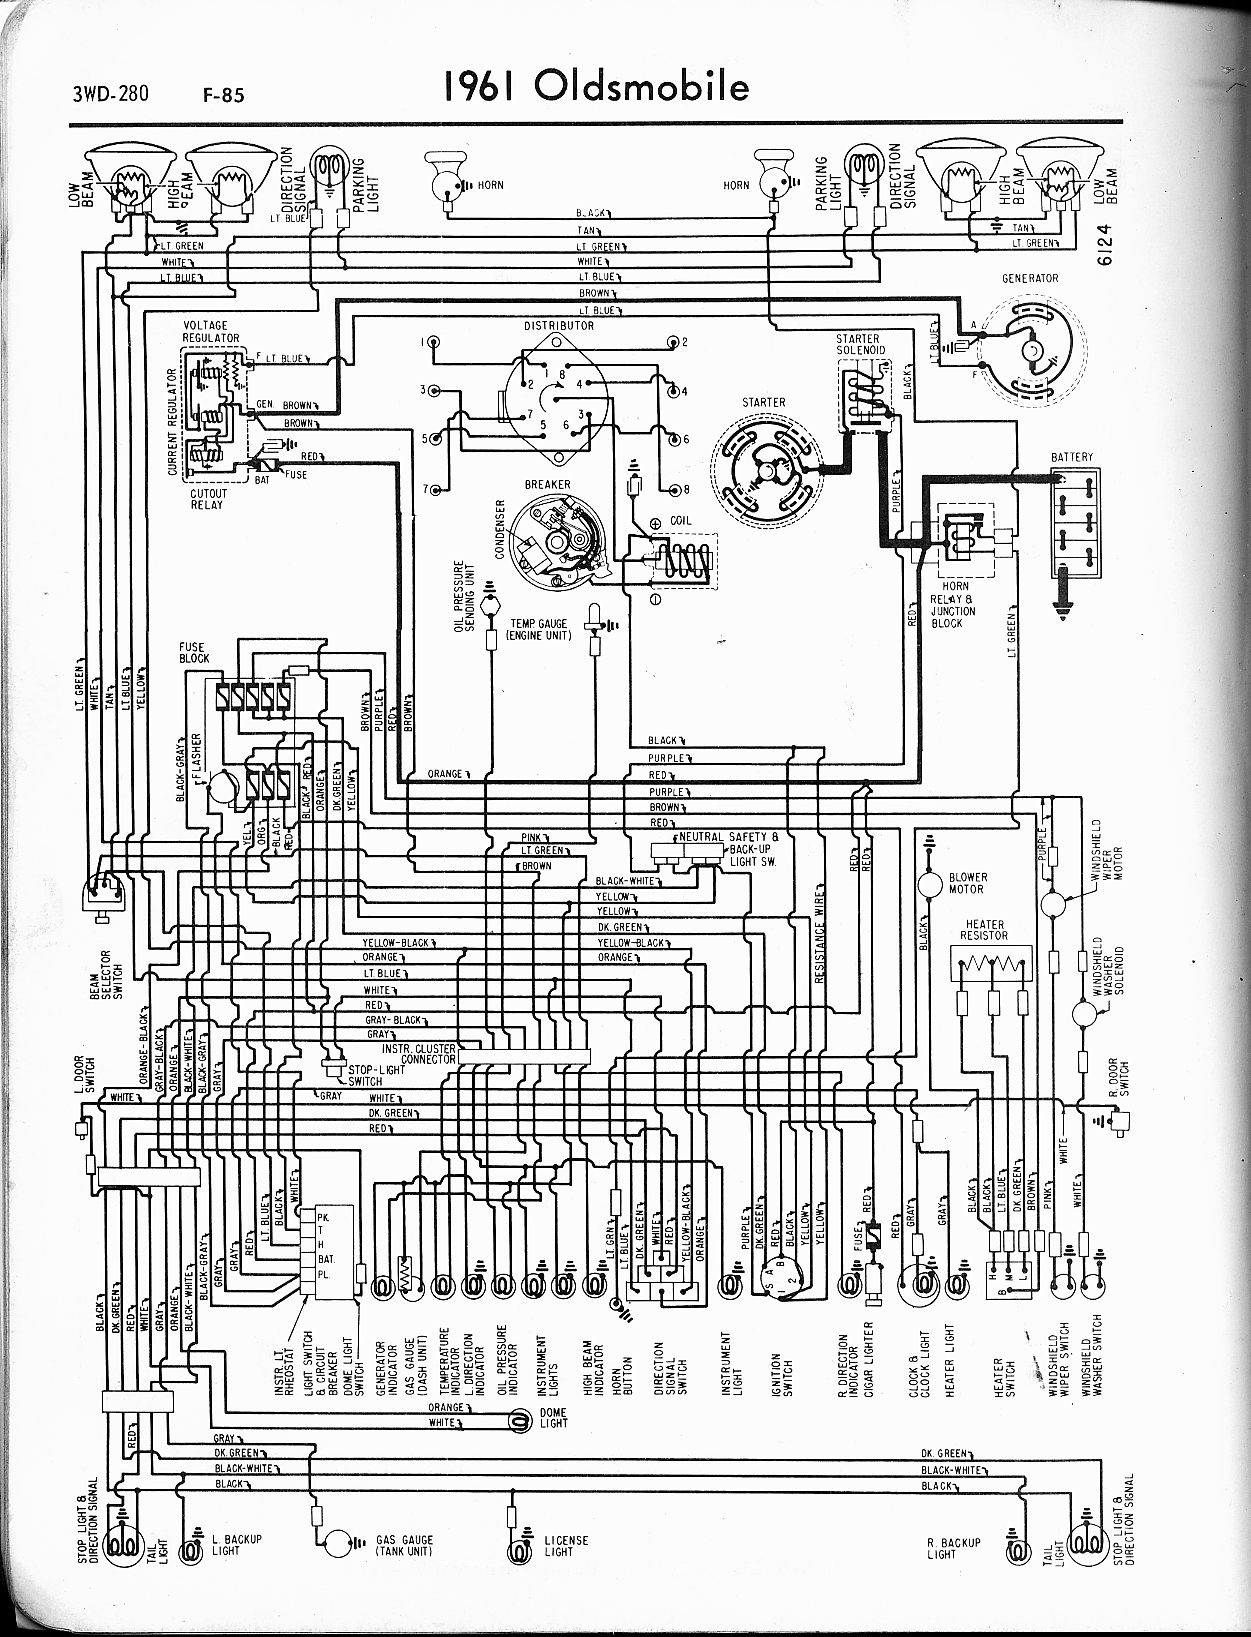 1970 Chevelle Wire Diagram Free Wiring For You 70 Harness 1972 Temp Gauge Simple Schema Rh 32 Aspire Atlantis De